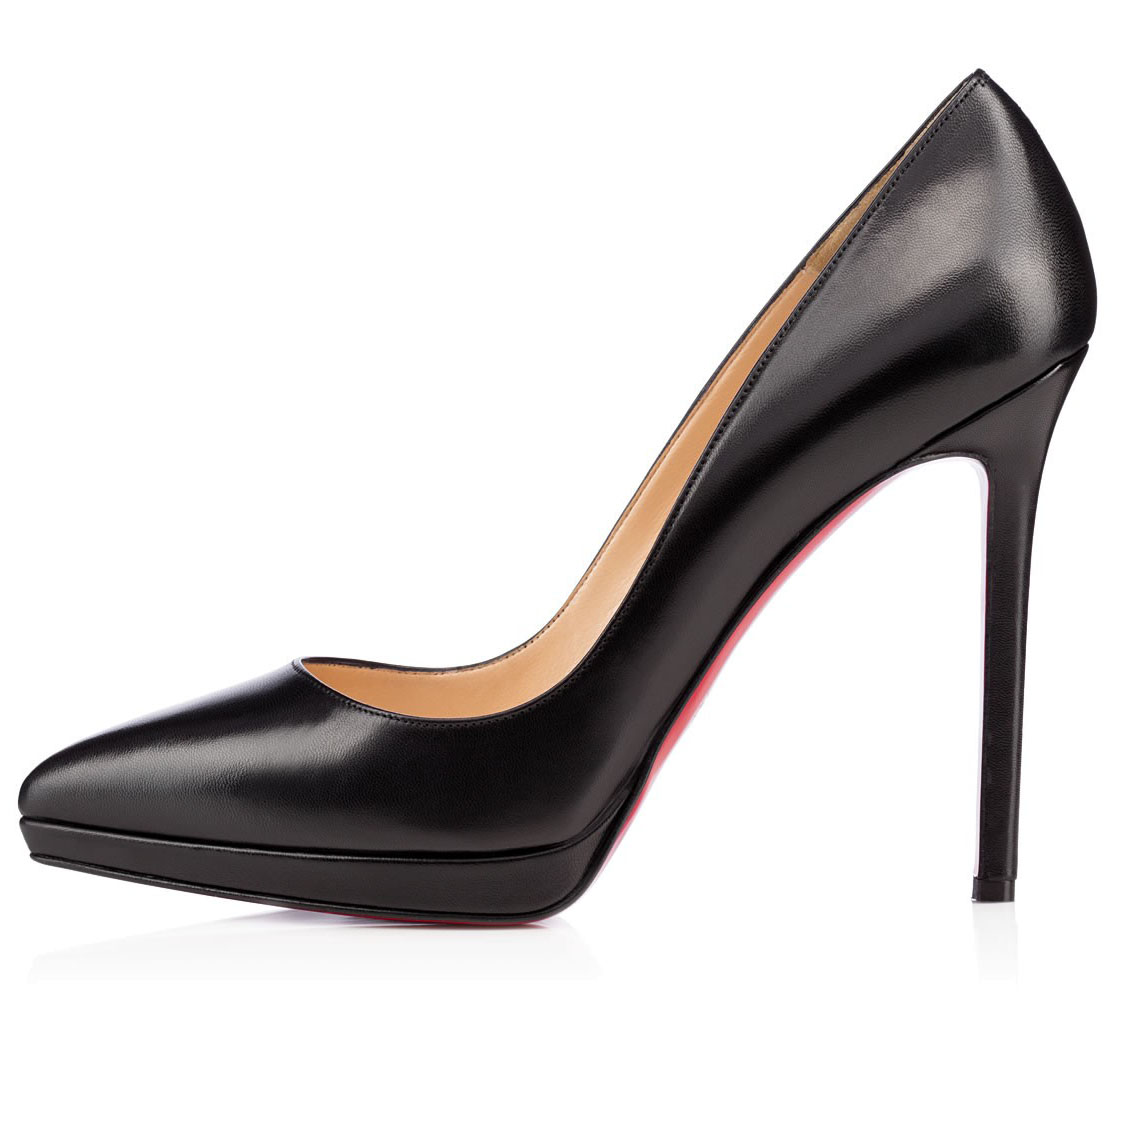 24b4def5caa CHRISTIAN LOUBOUTIN PIGALLE PLATO 120MM BLACK KID LEATHER - Reed ...